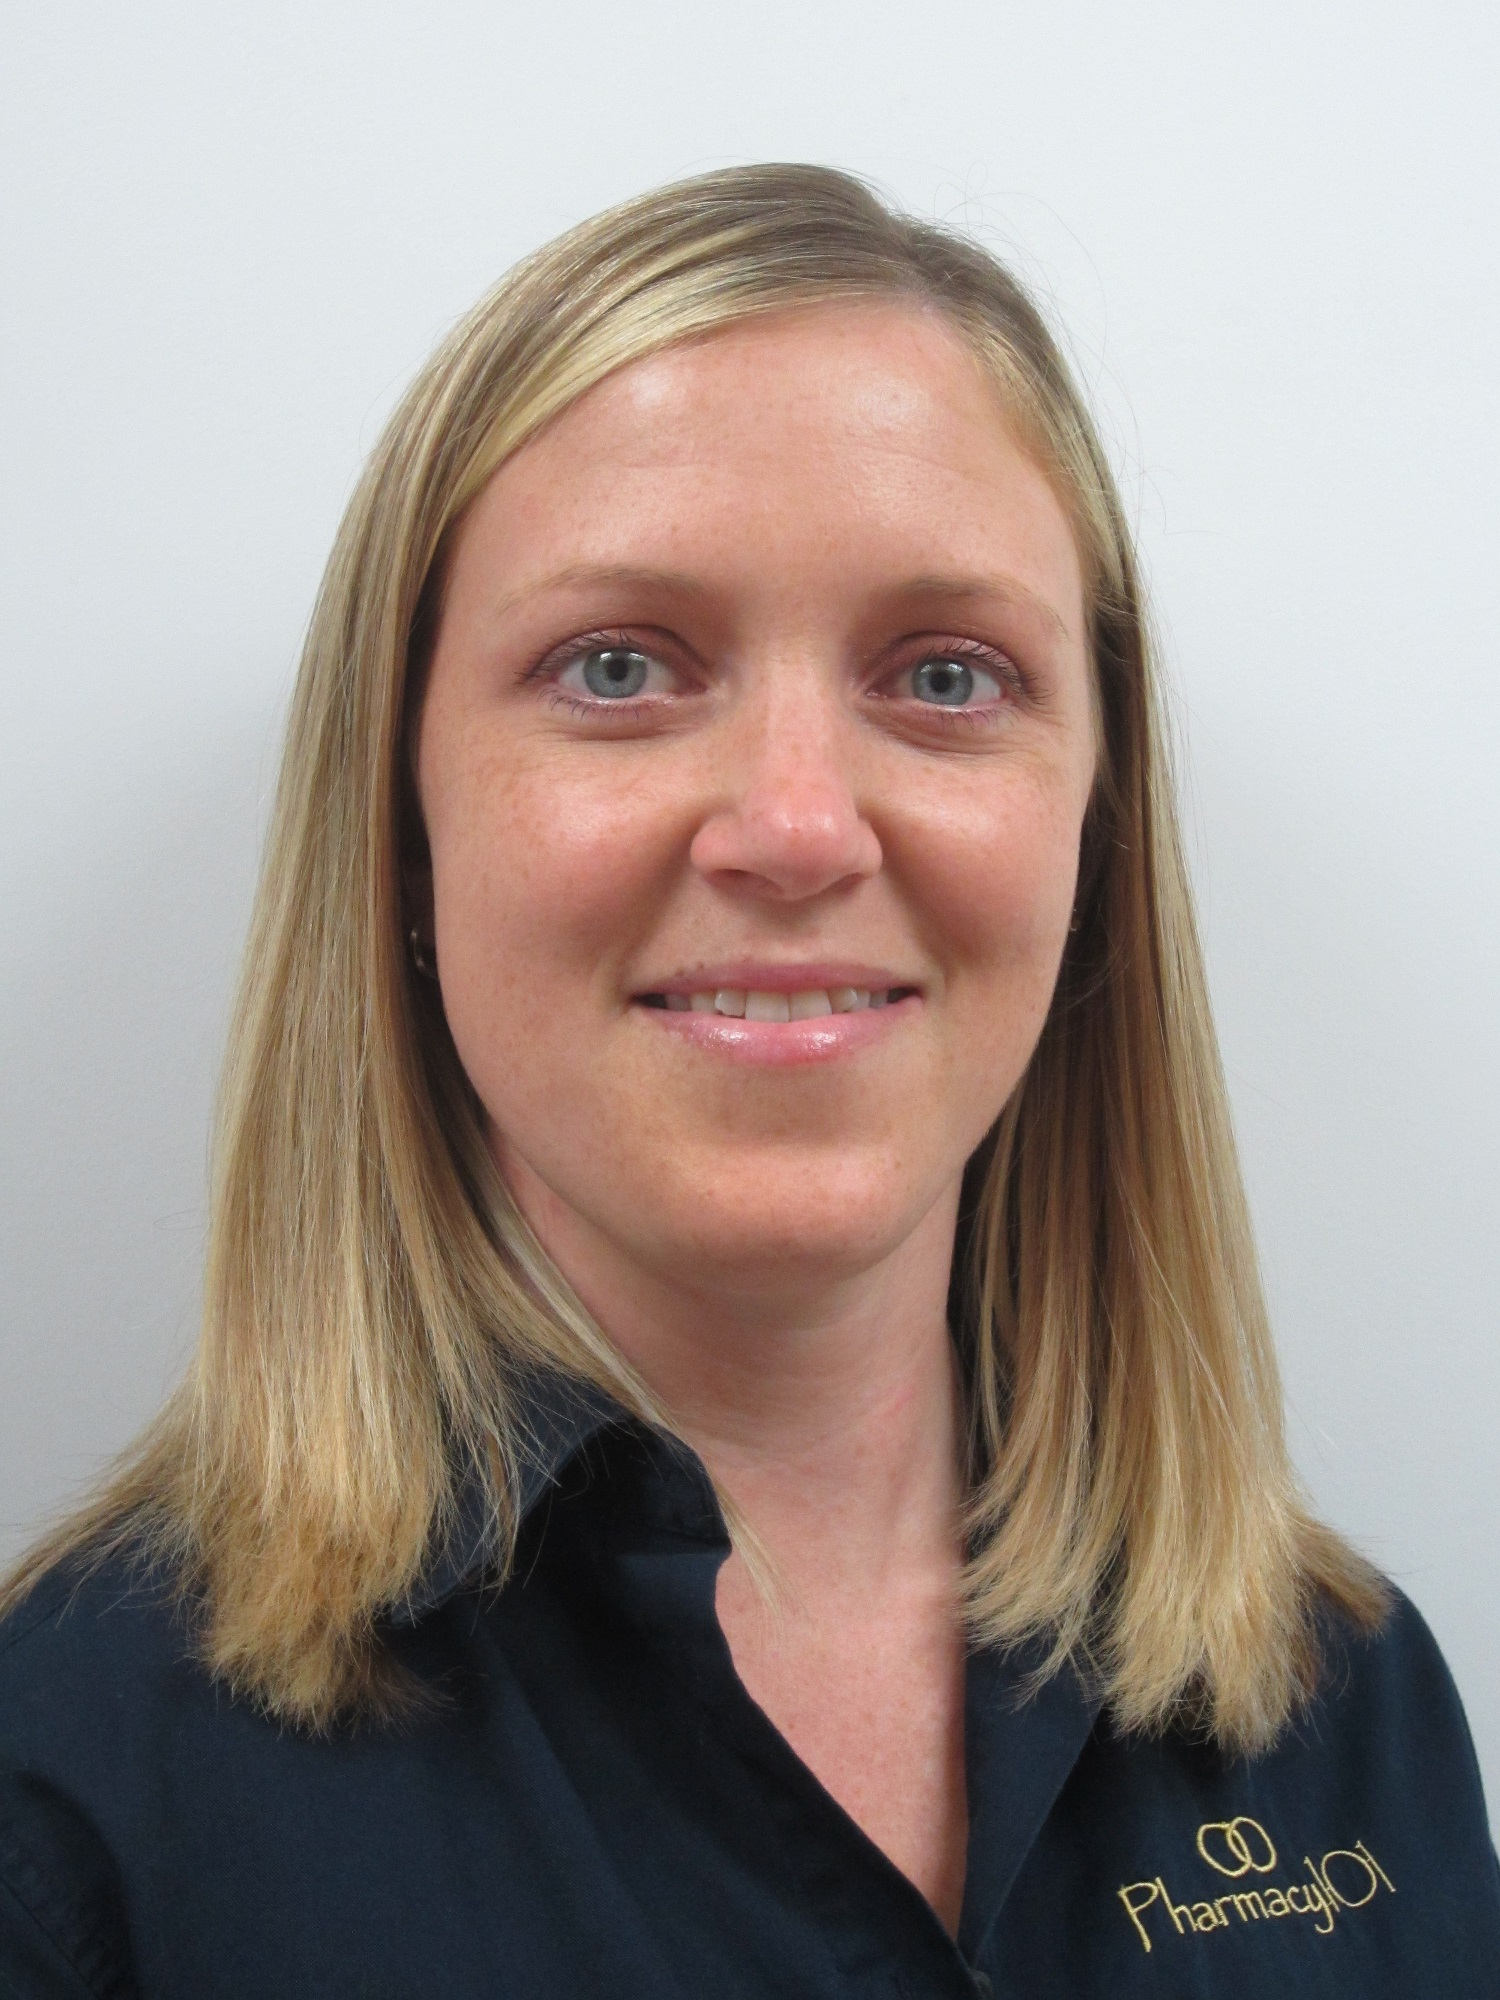 Erin Waites, Pharmacy Assistant, Certified Fitter for Compression Stockings